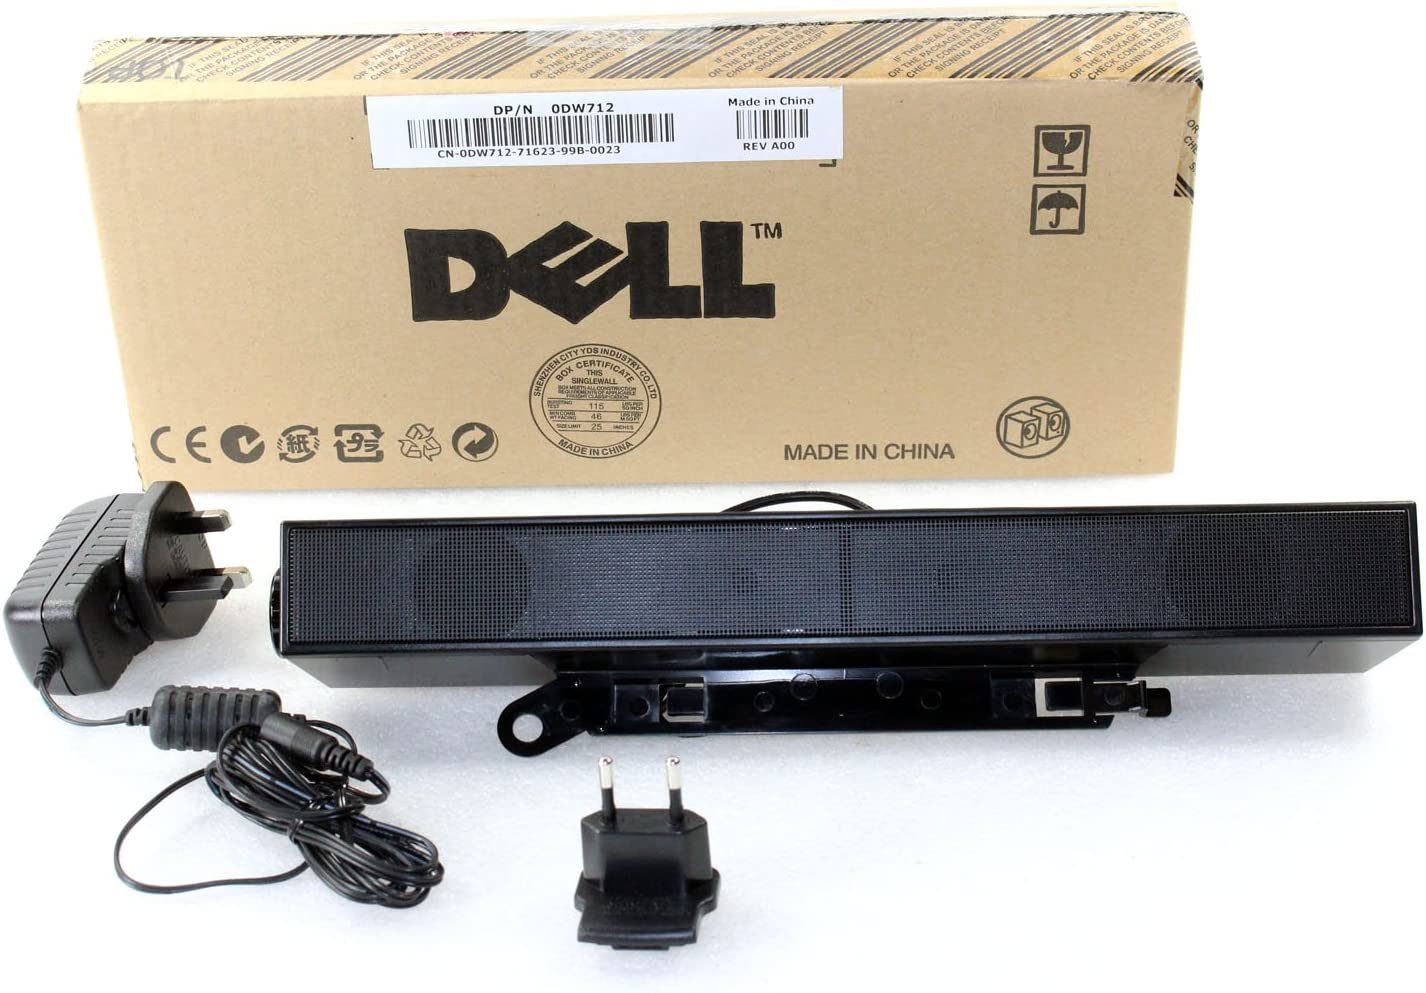 Dell AX510PA E Series Flat Panel Stereo Sound Bar with Power Adapter